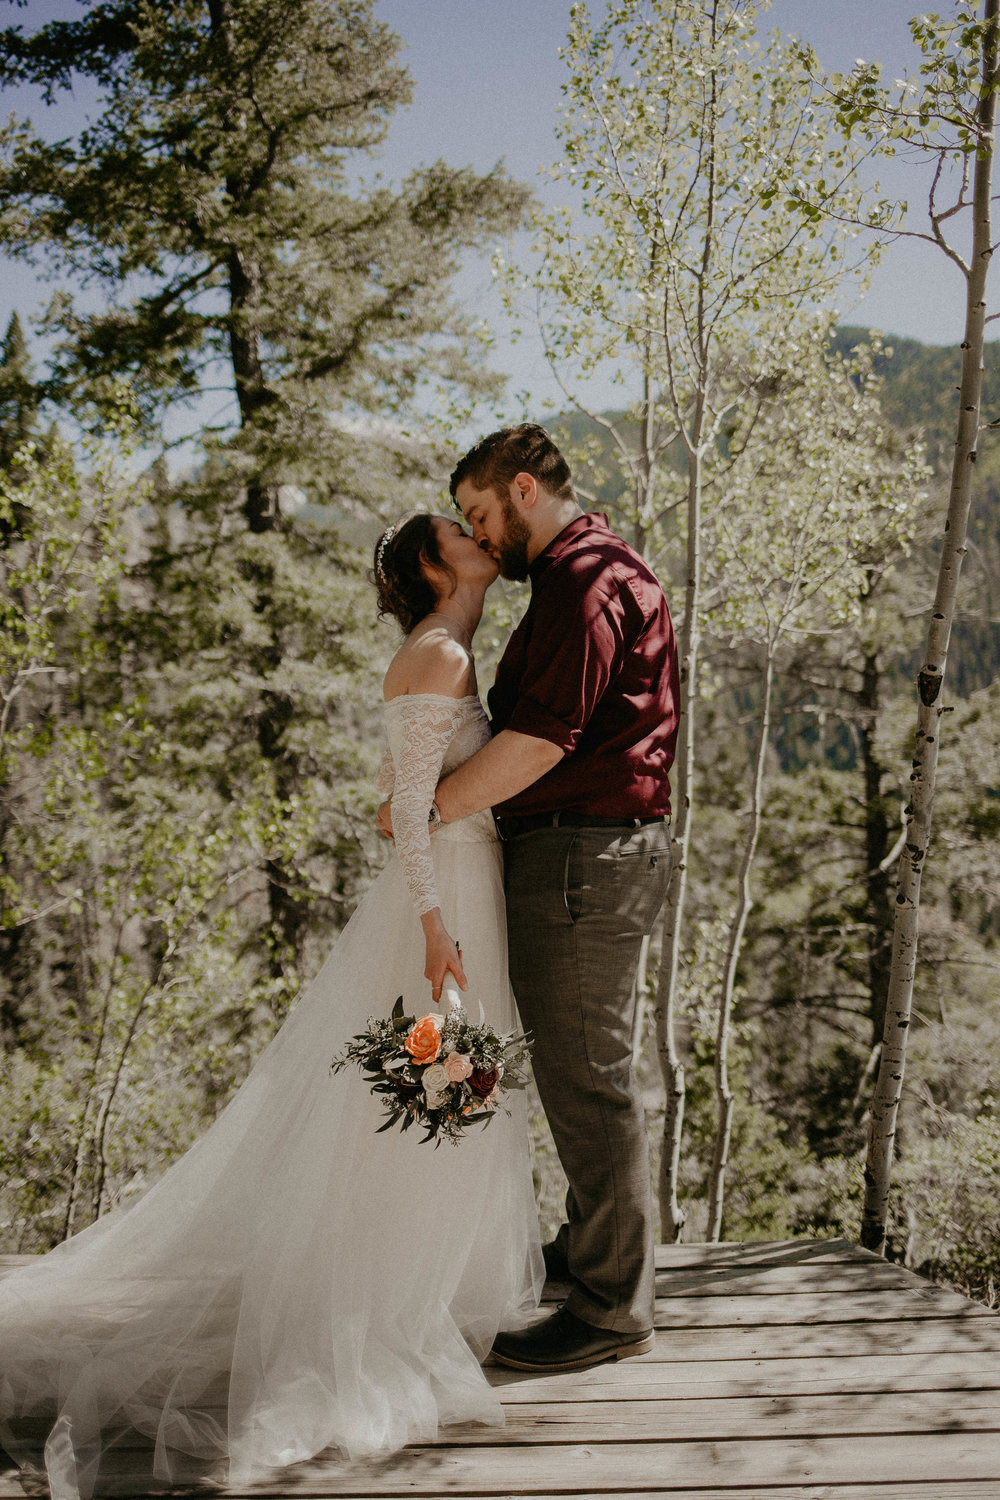 Best Wedding Photographer in Lubbock, TX | Best Wedding Photographer in Taos, NM | Adventurous Wedding Photographer | Mountain Elopement Photos | Kailee Ann Photography Lubbock